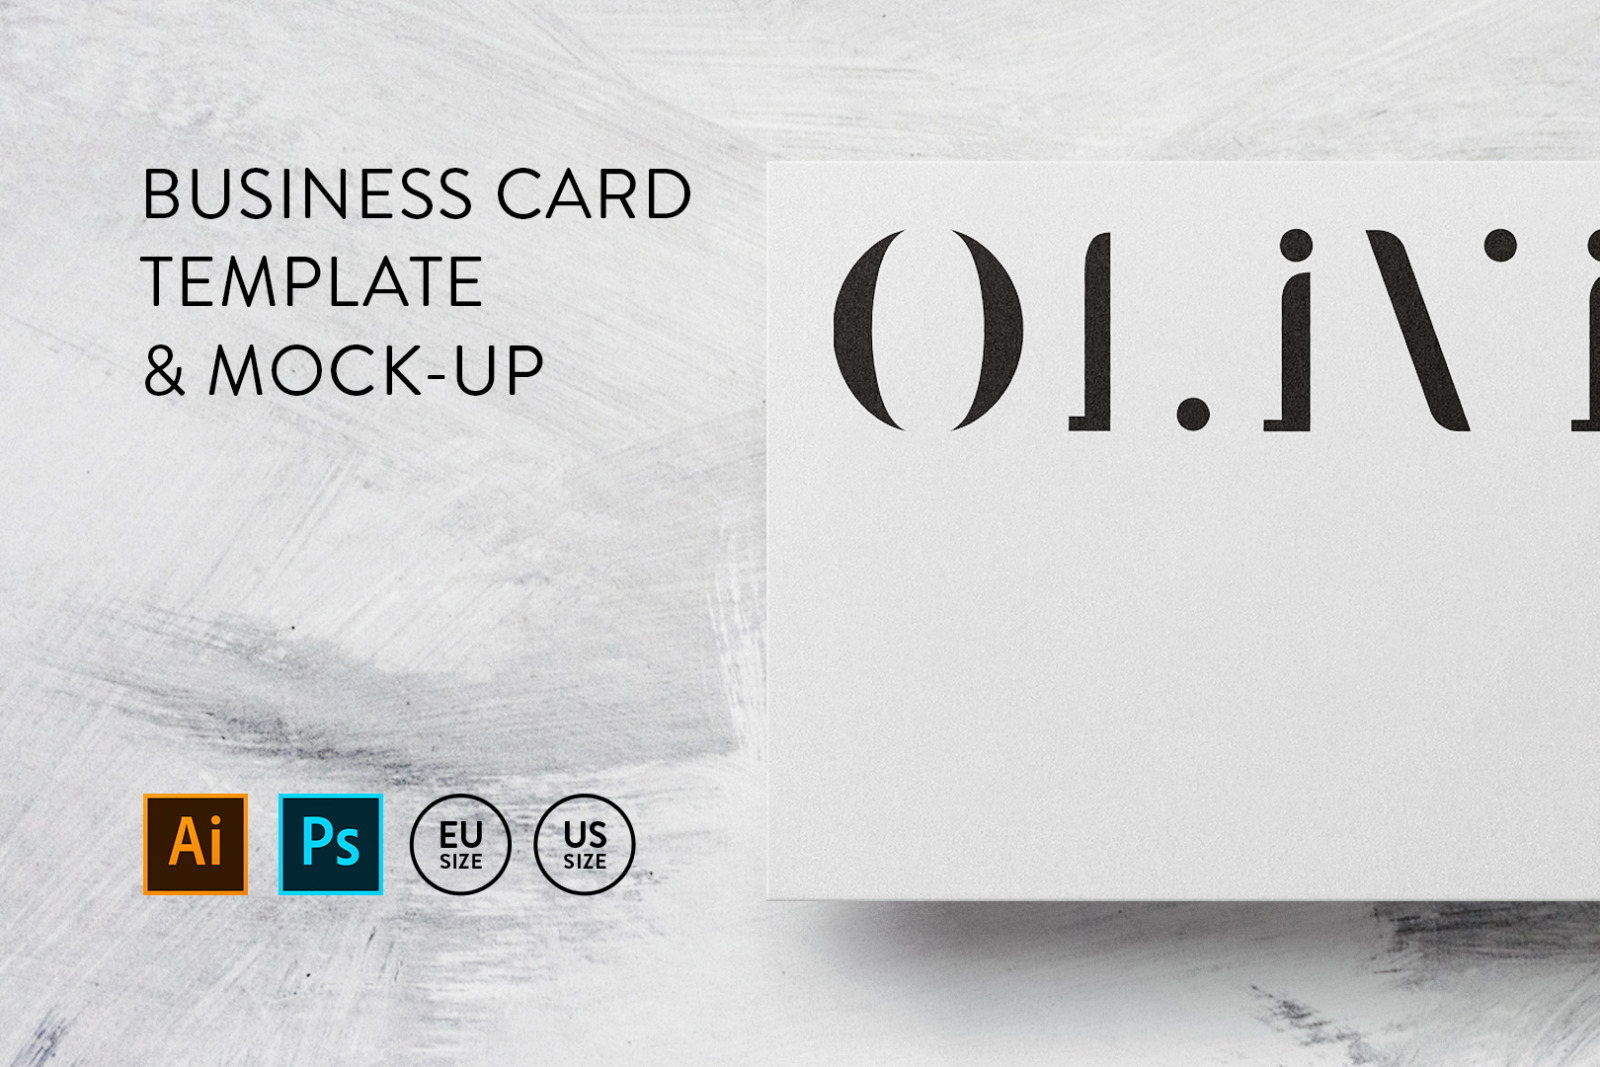 Business card Template & Mock-up #23